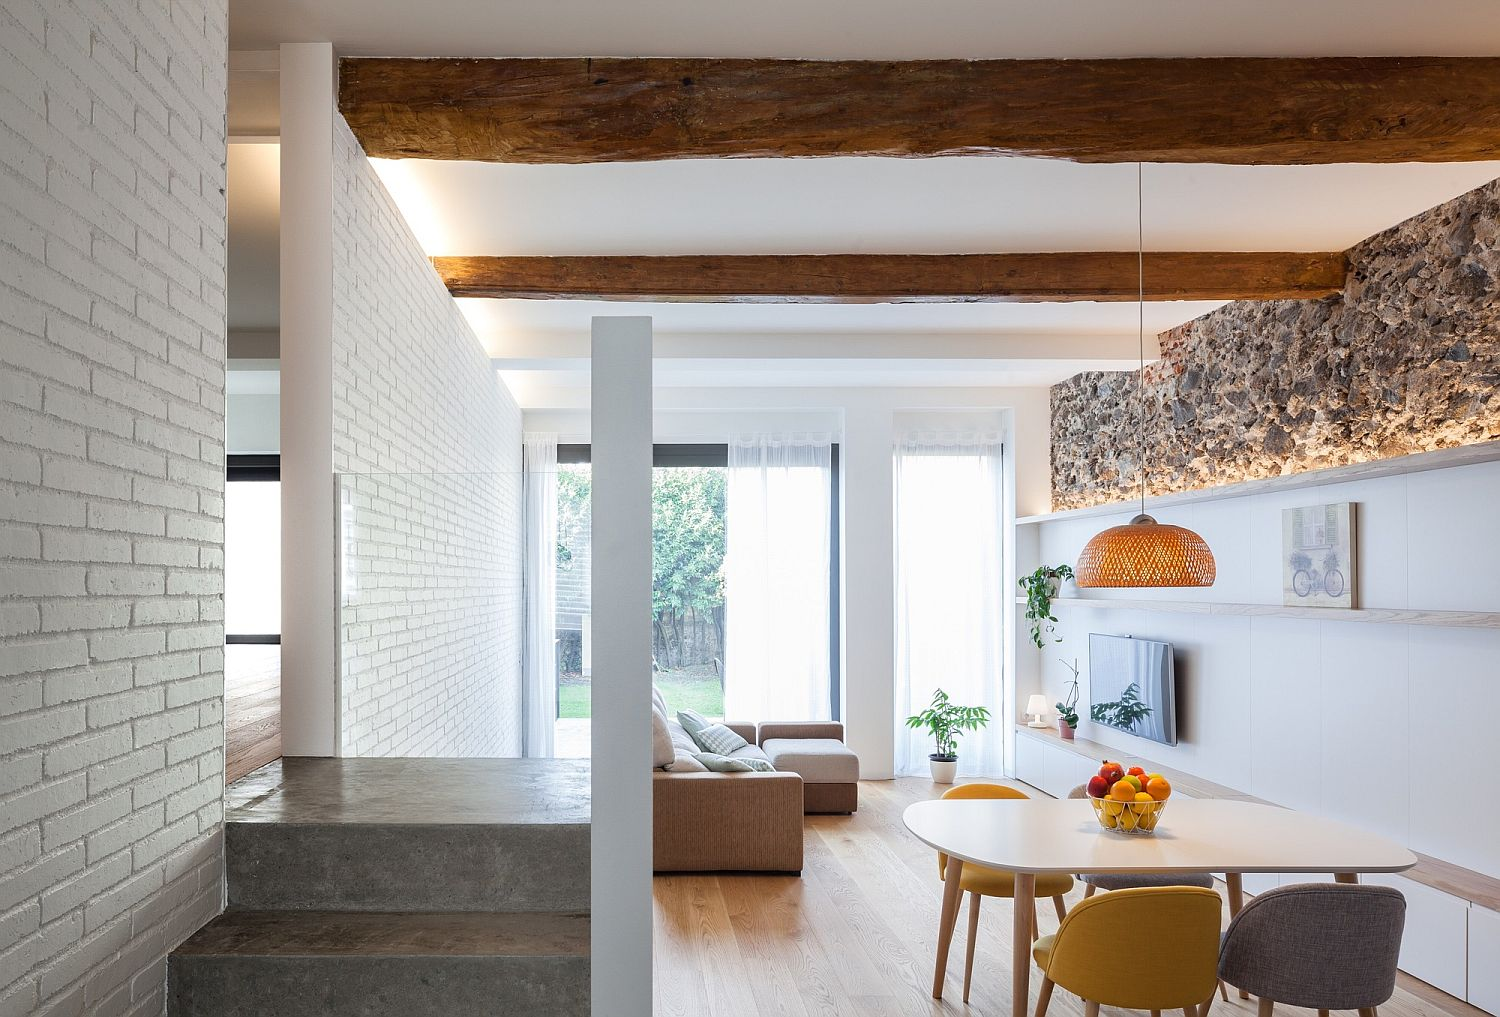 Living area of the Spanish home with light and cheerful appeal